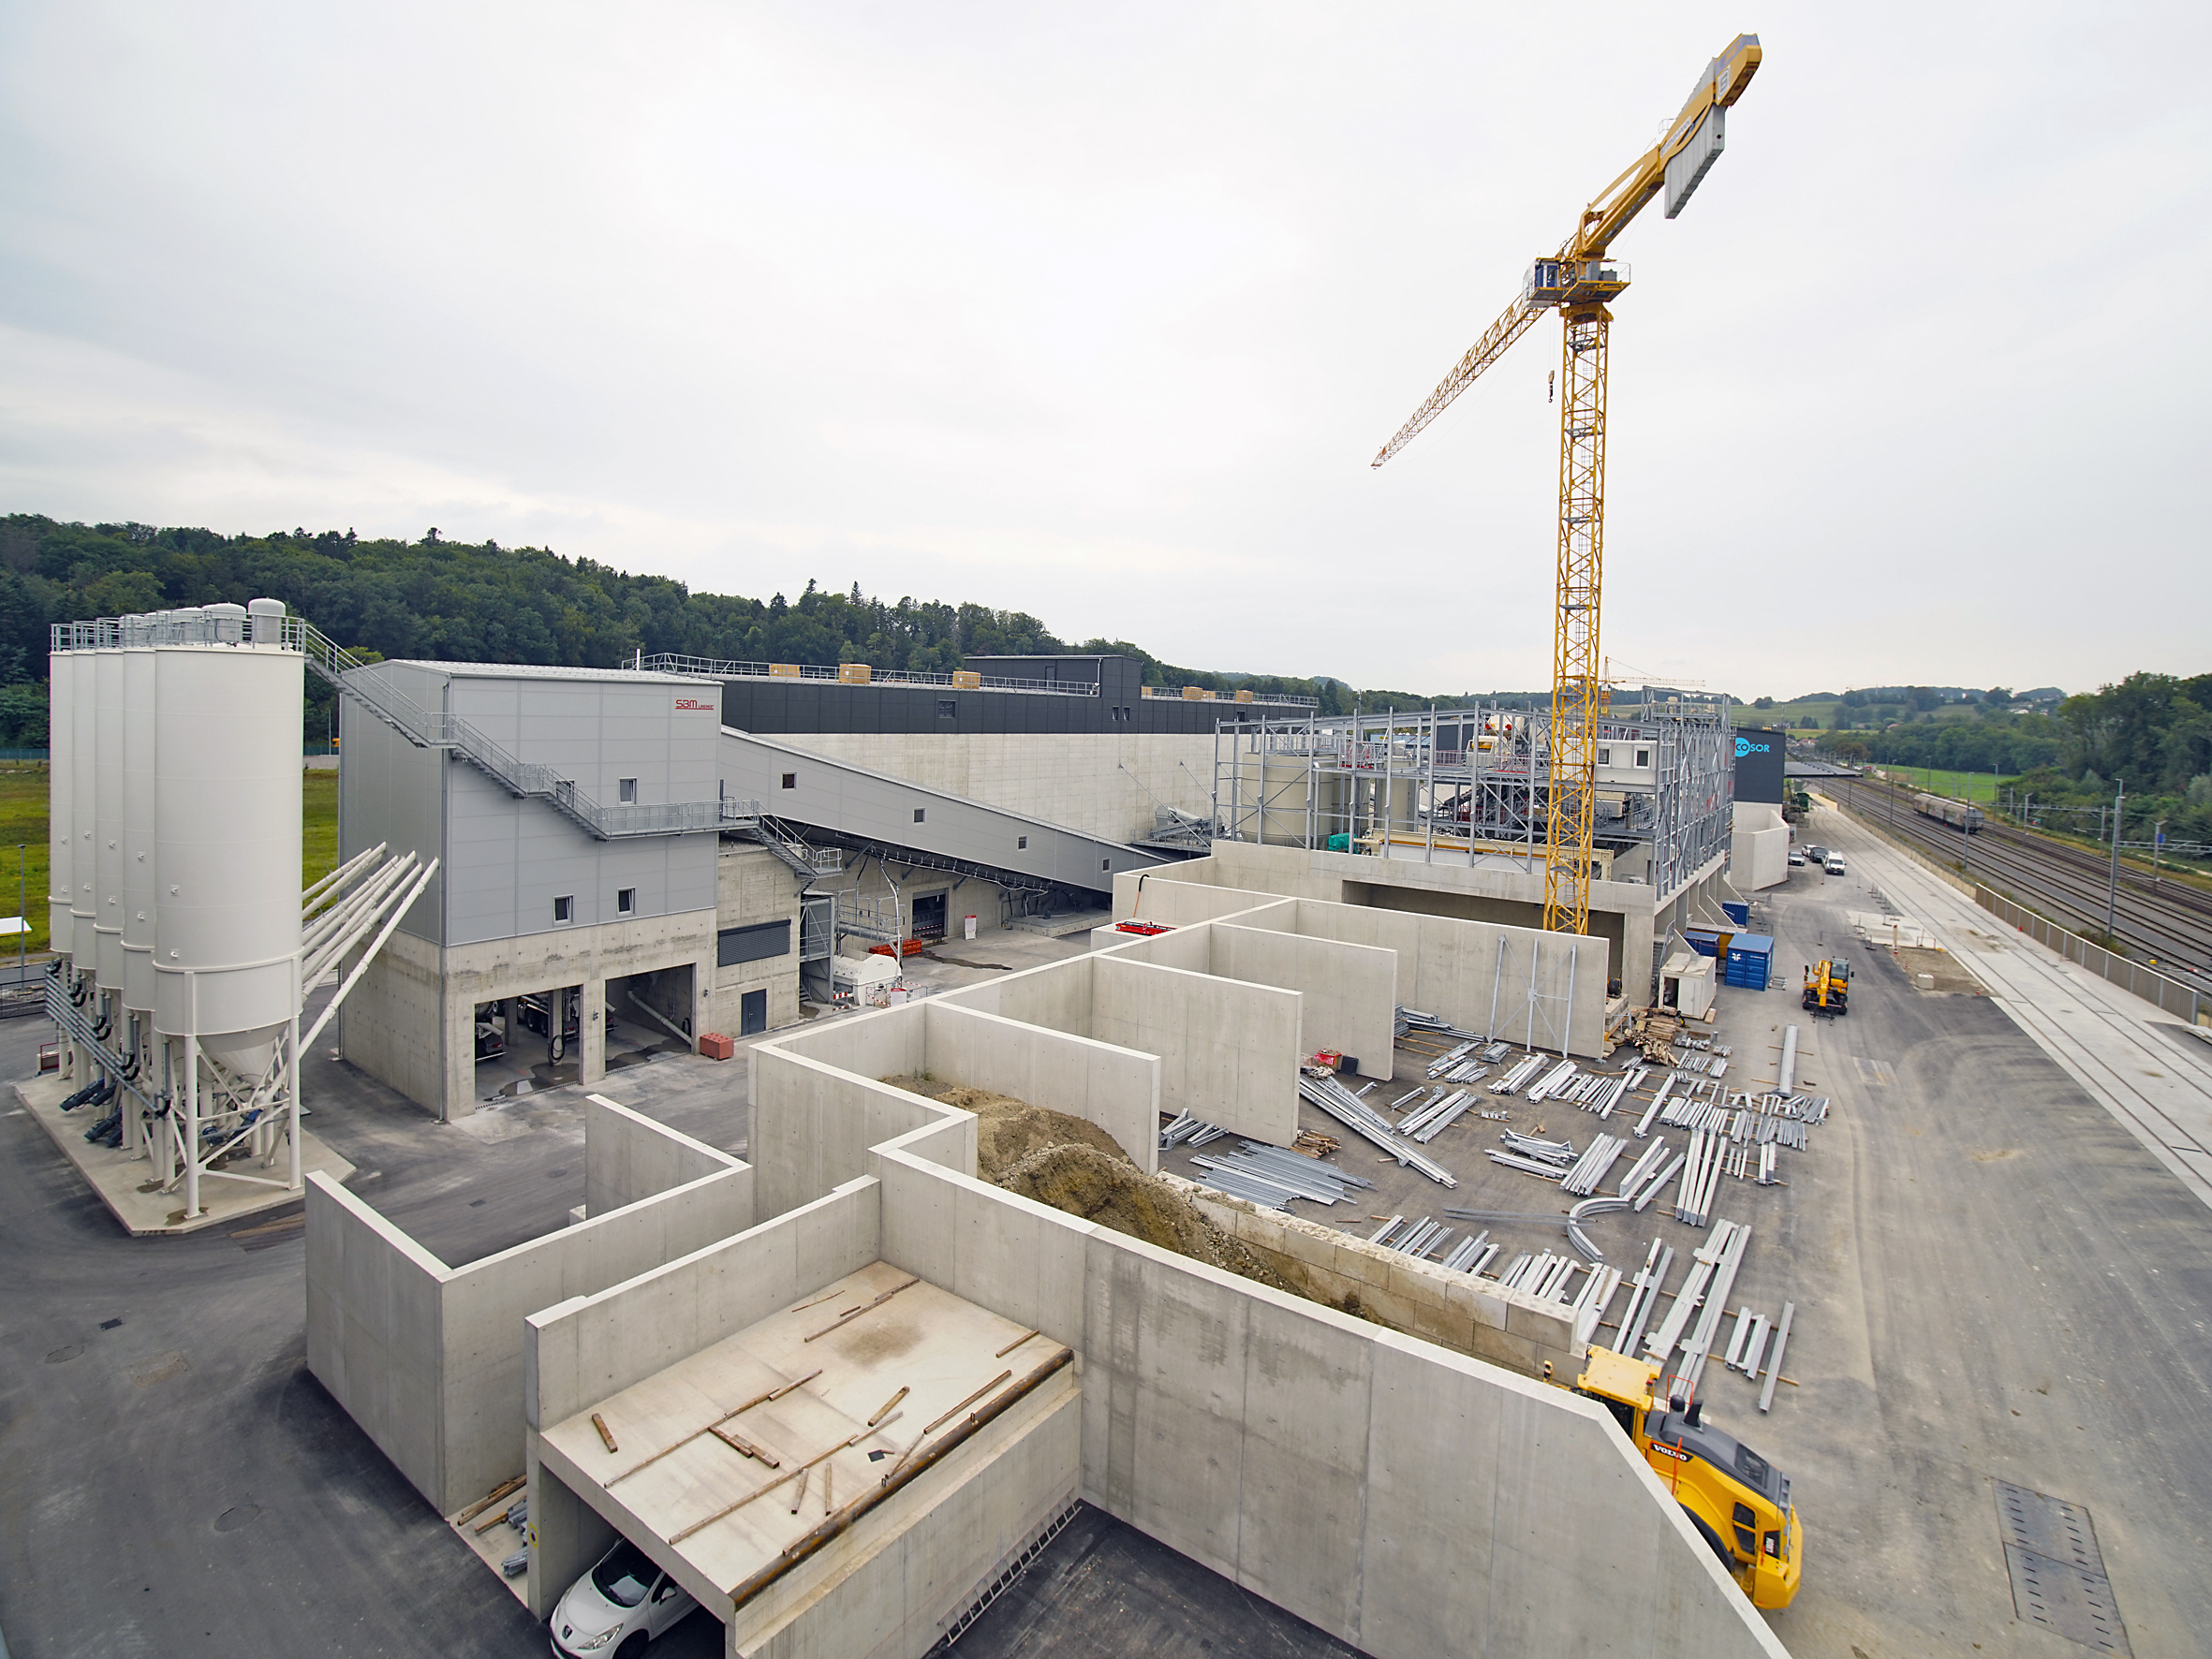 The BGO complex is easily accessible directly on the passing Cantonal road and is supplied via the bunker extractors for trucks and block trains at the track access.